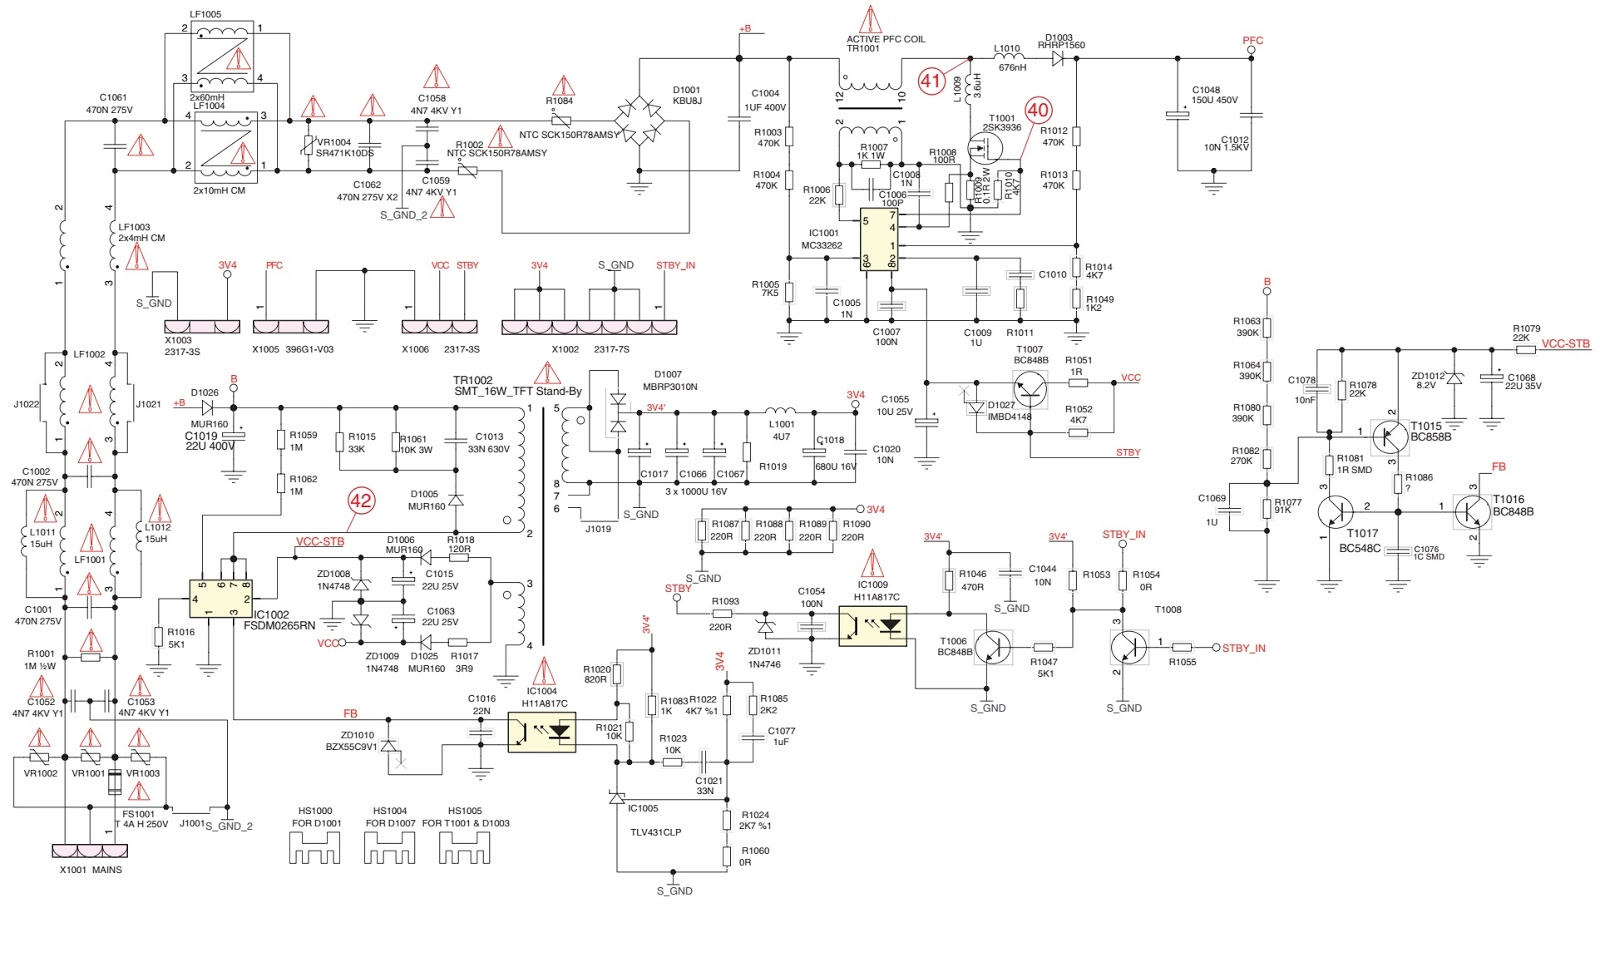 medium resolution of grundig lcd tv smps schematics circuit diagrams electronic besides live sound system setup diagram on tv schematic block diagram